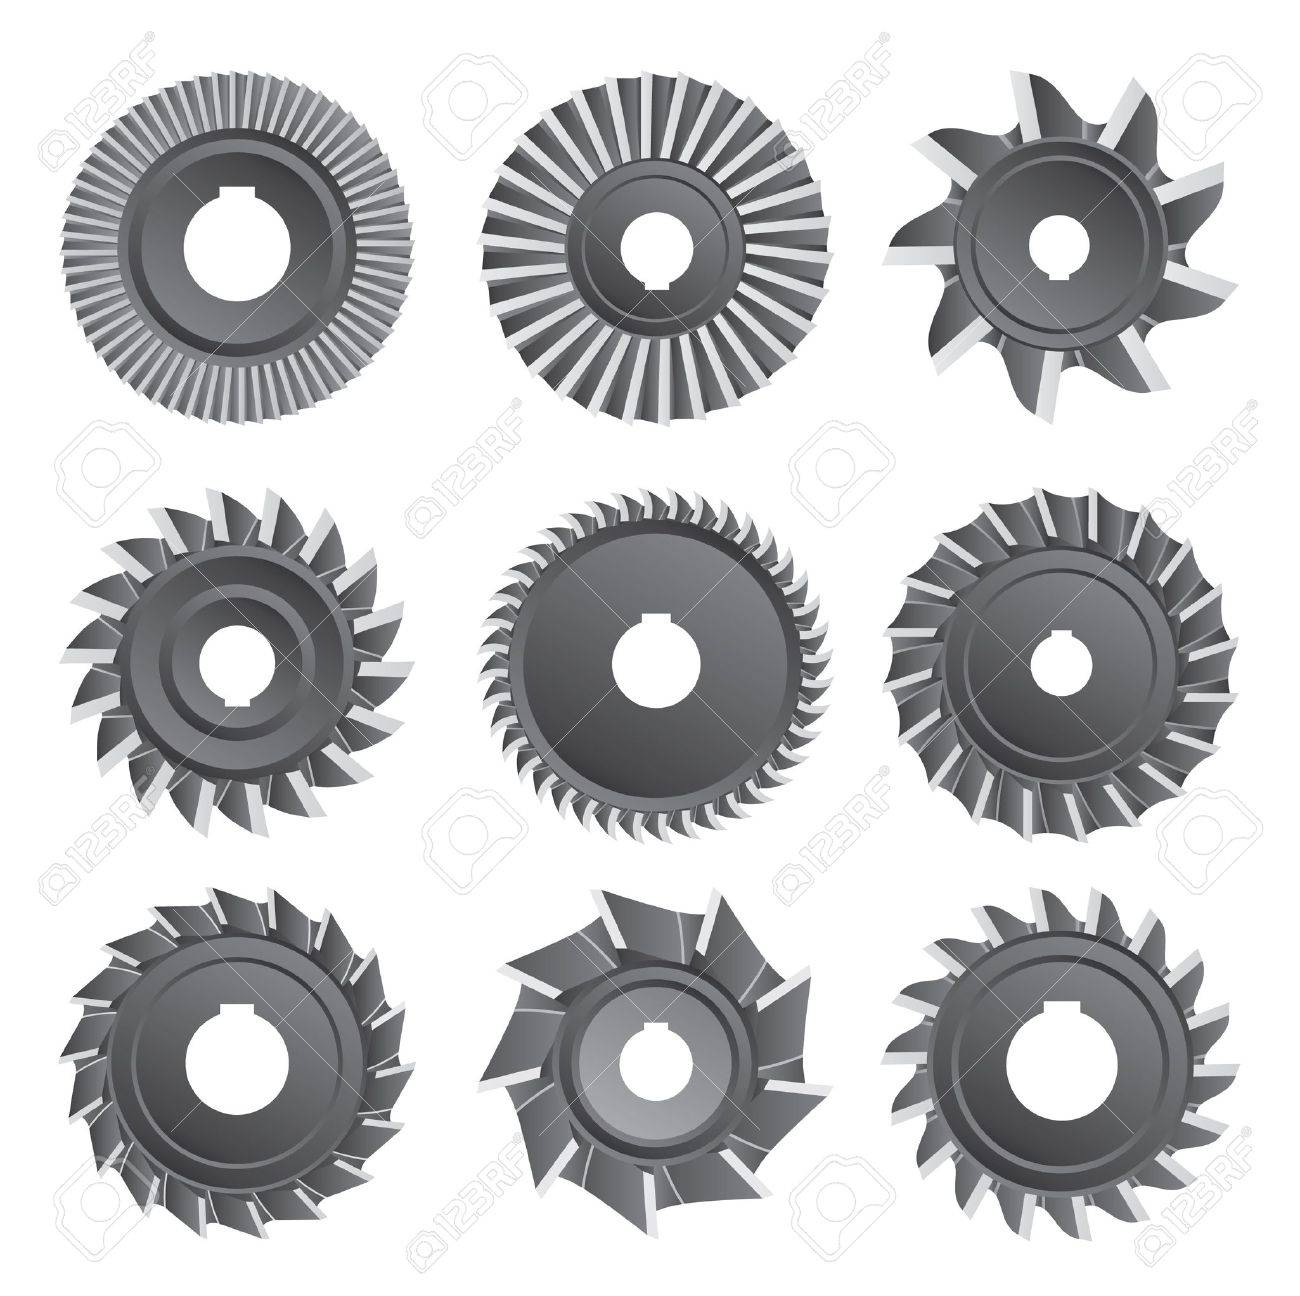 Milling cutters for metal on a white background Stock Vector - 18287830